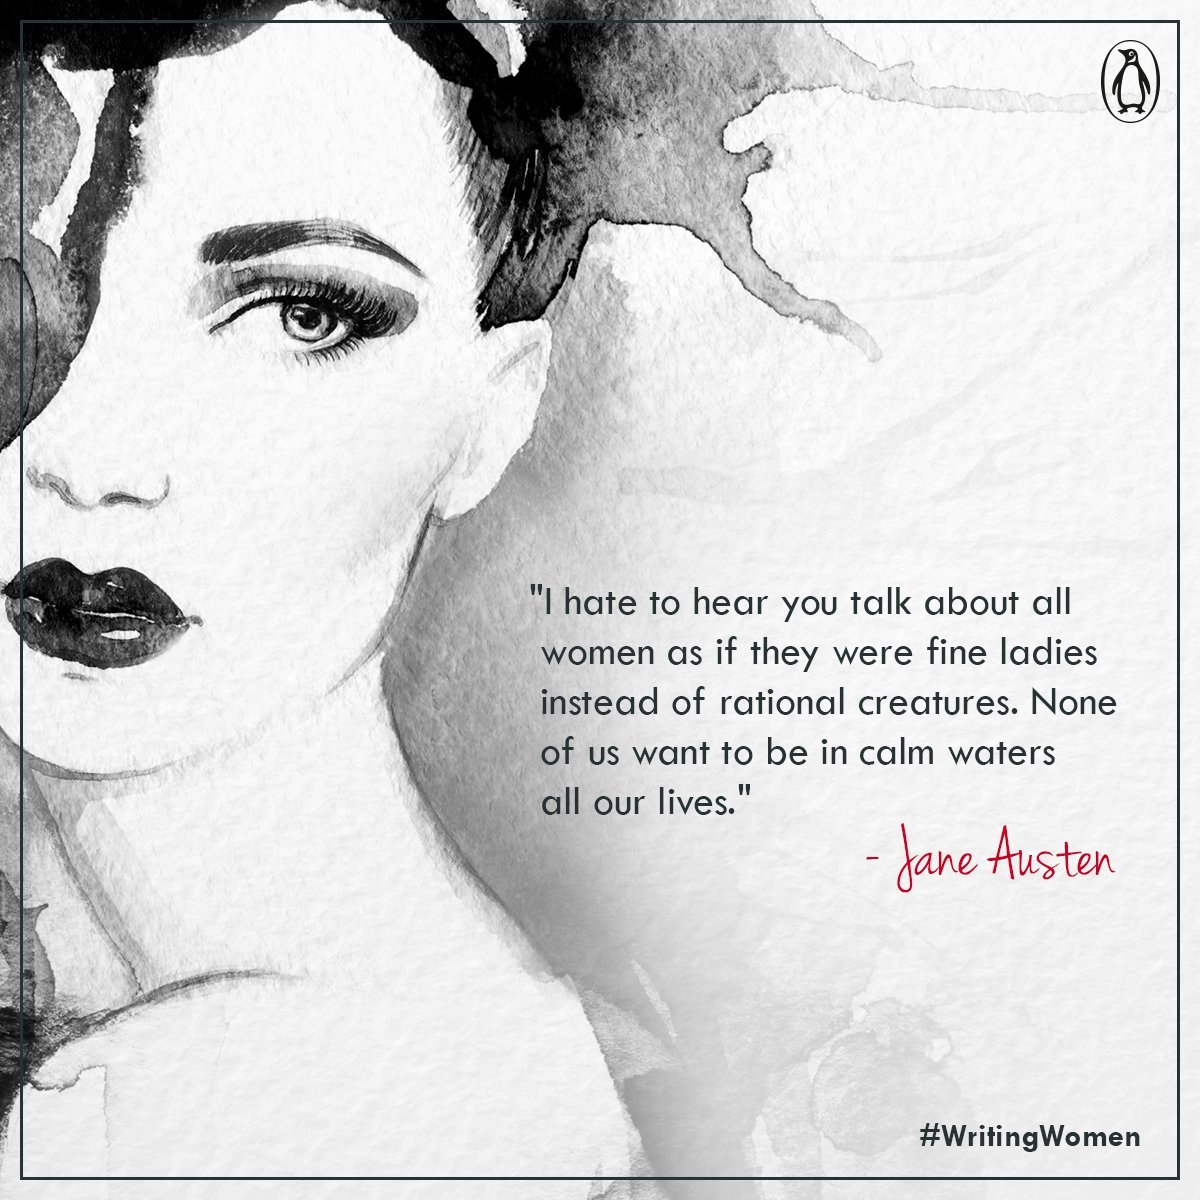 Women Quotes 8 Quotes From Literature That Show The World From A Woman's